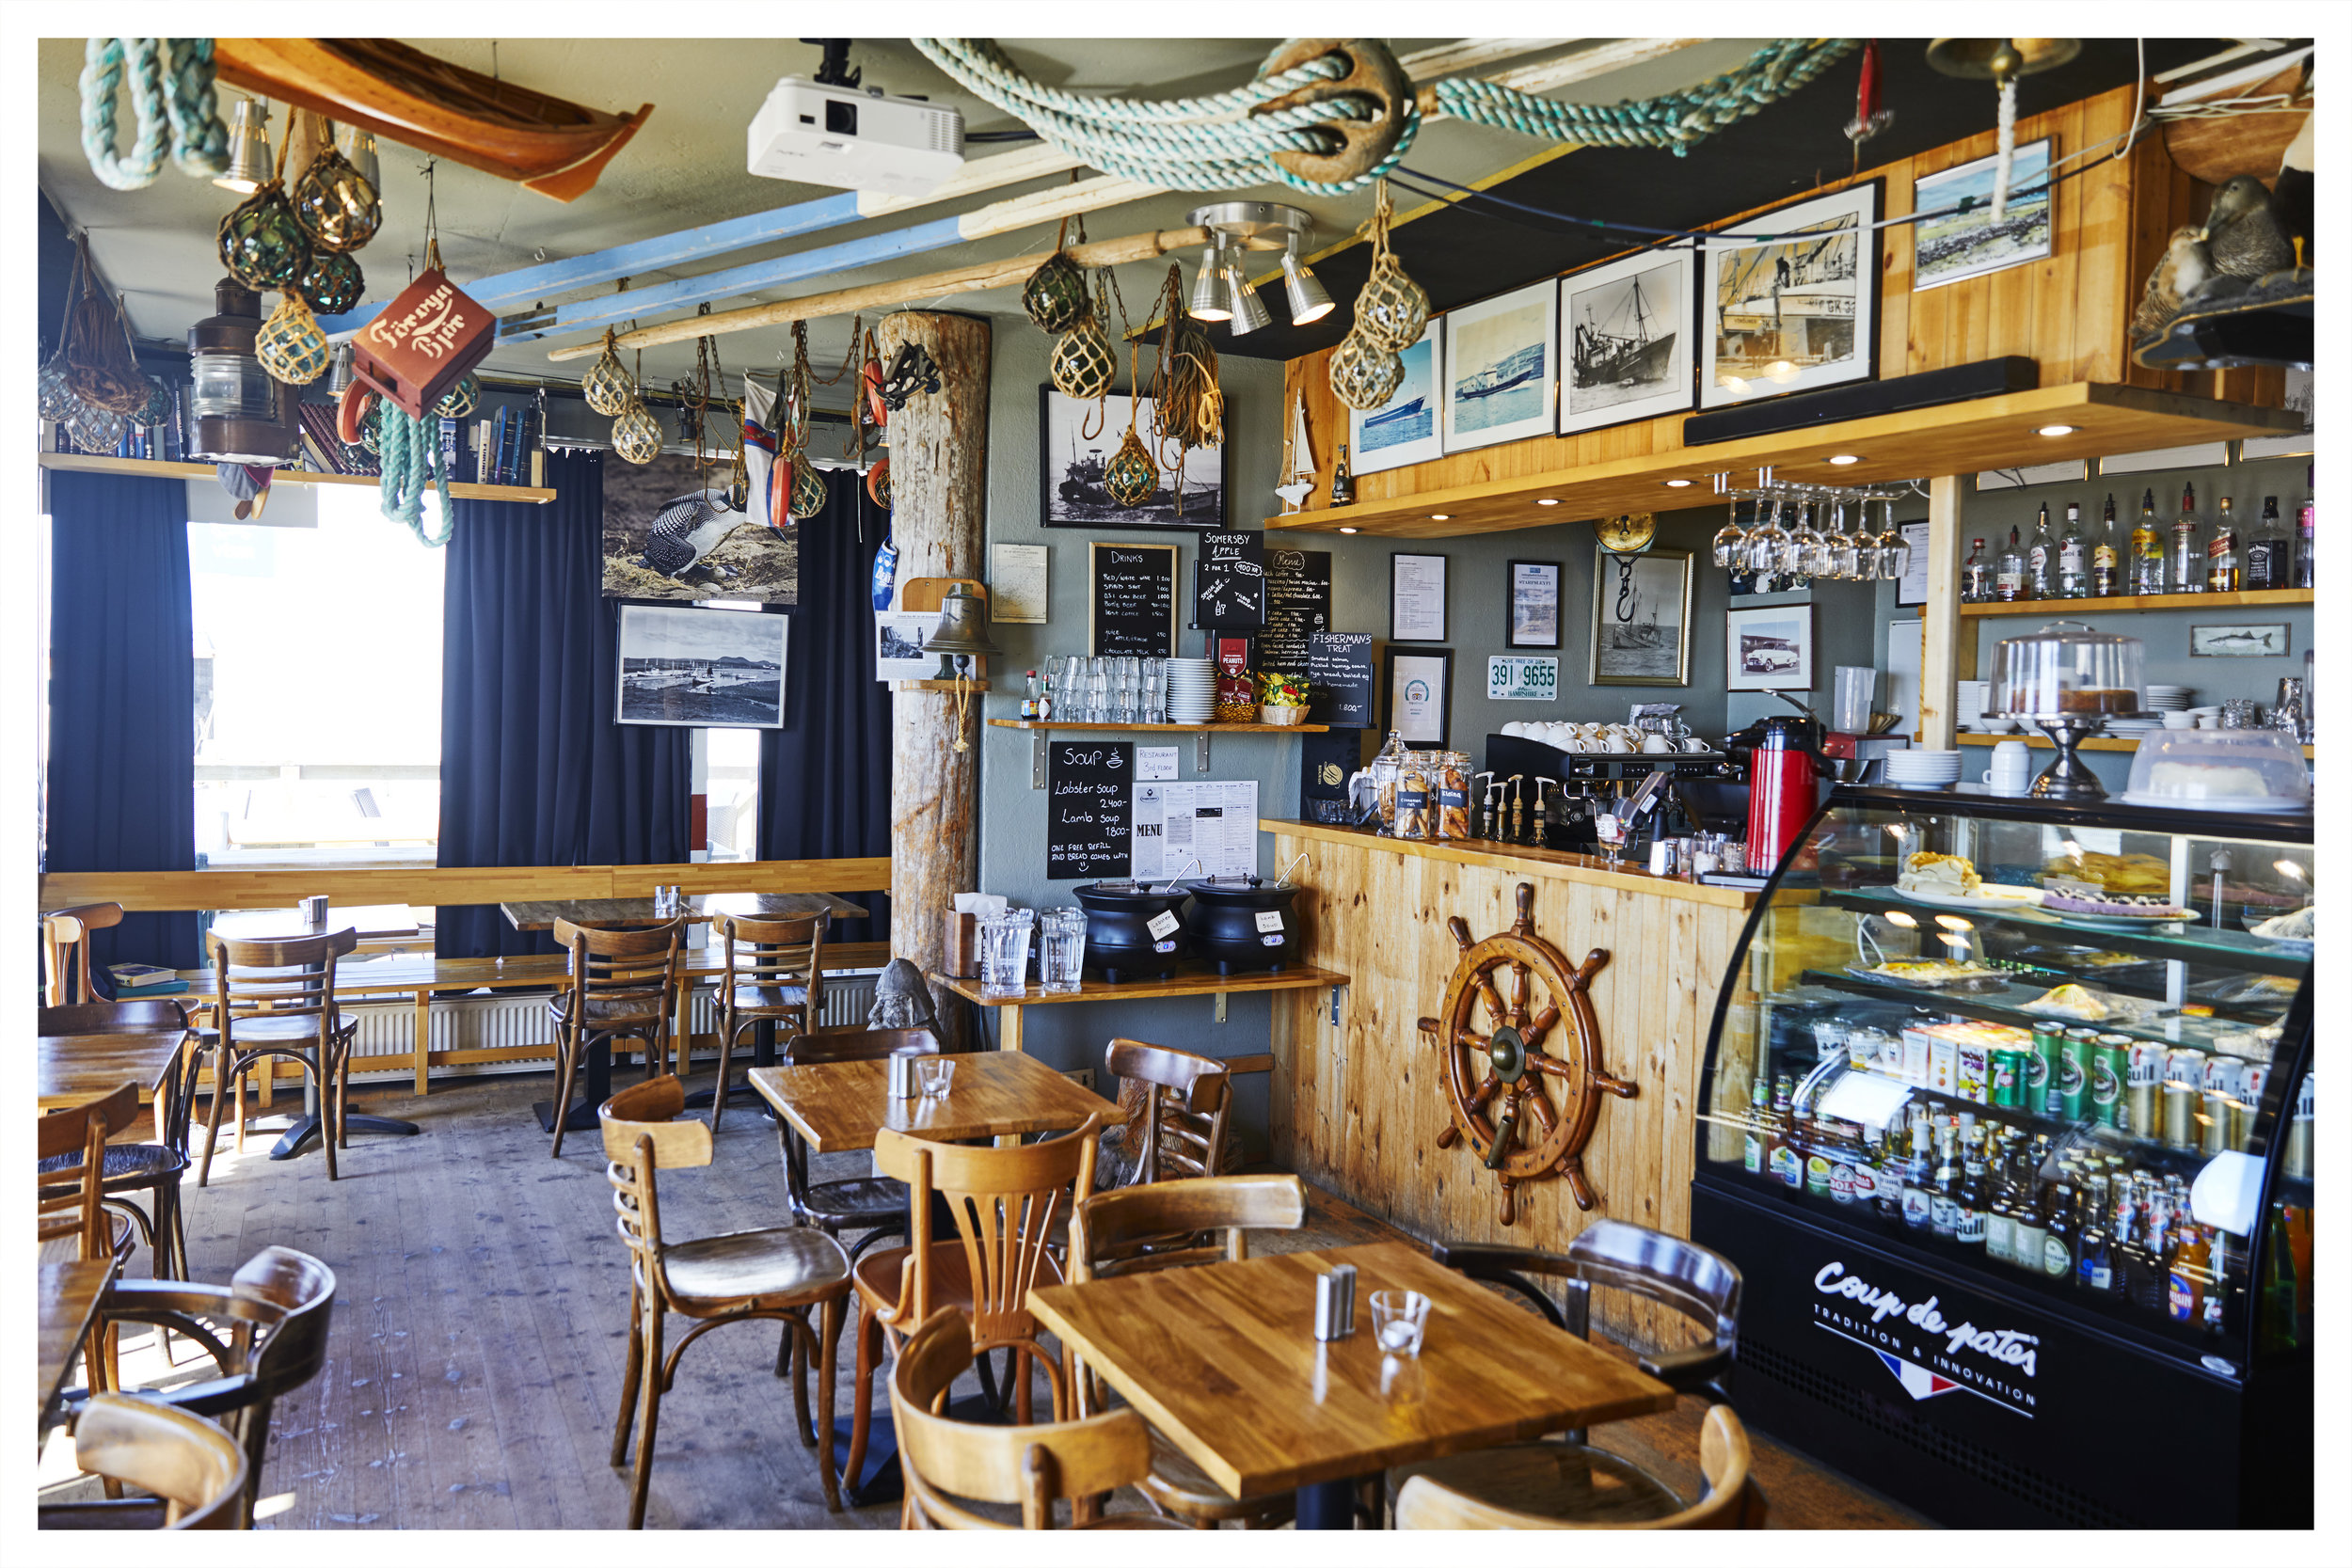 Bryggjan Cafe  - Altough small, this little Cafe has a lot of heart.